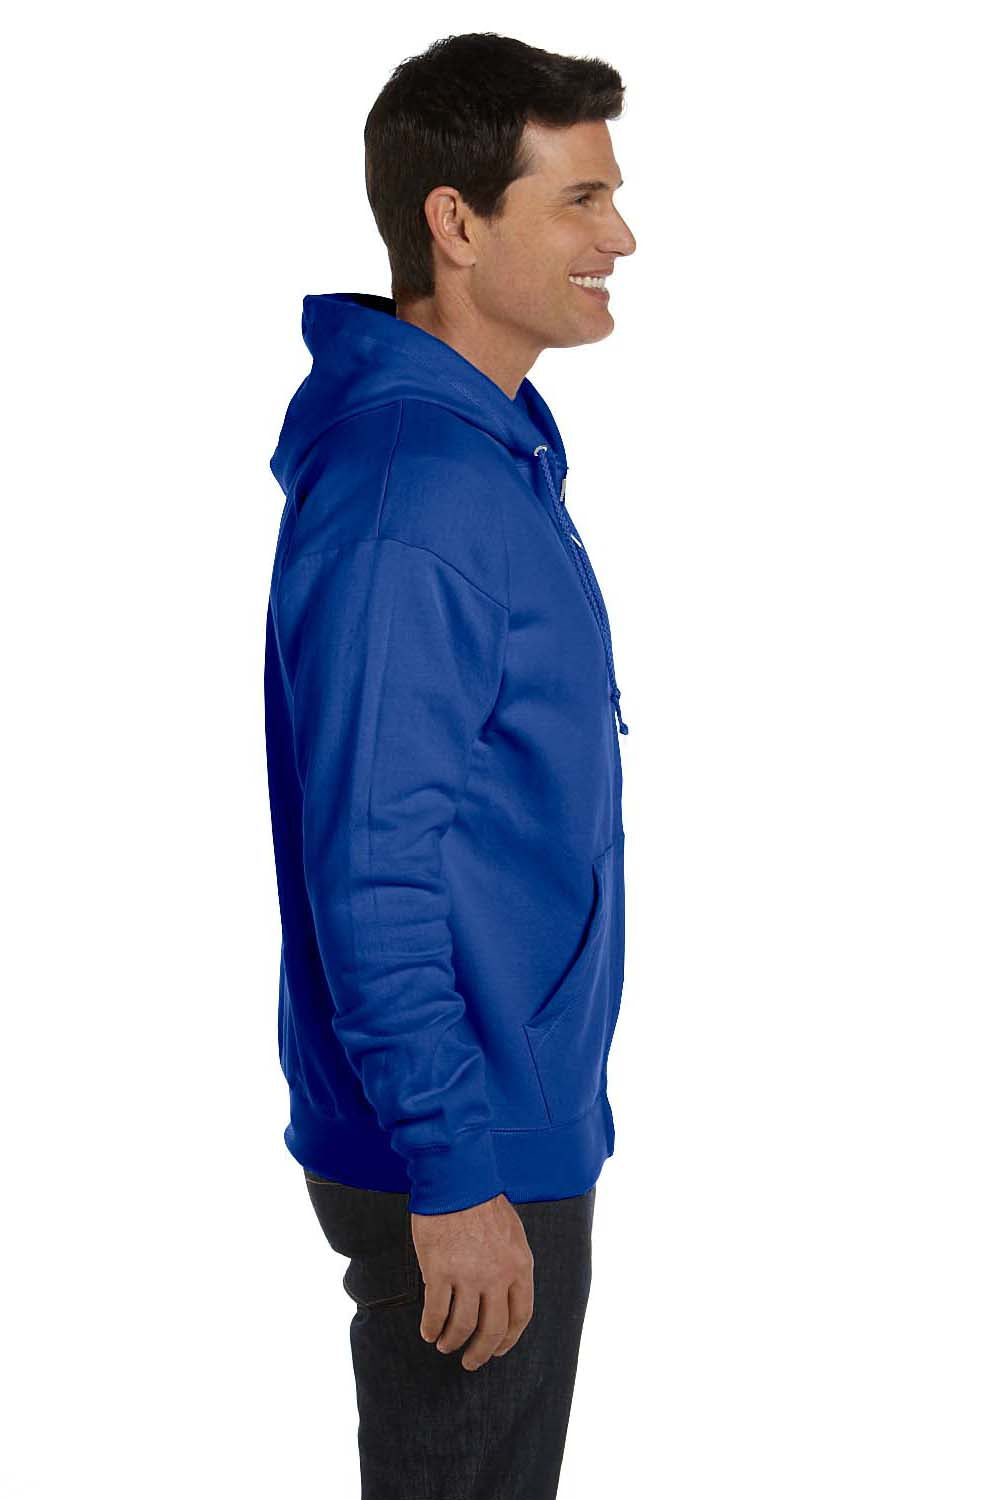 Hanes P180 Mens EcoSmart Print Pro XP Full Zip Hooded Sweatshirt Hoodie Royal Blue Side